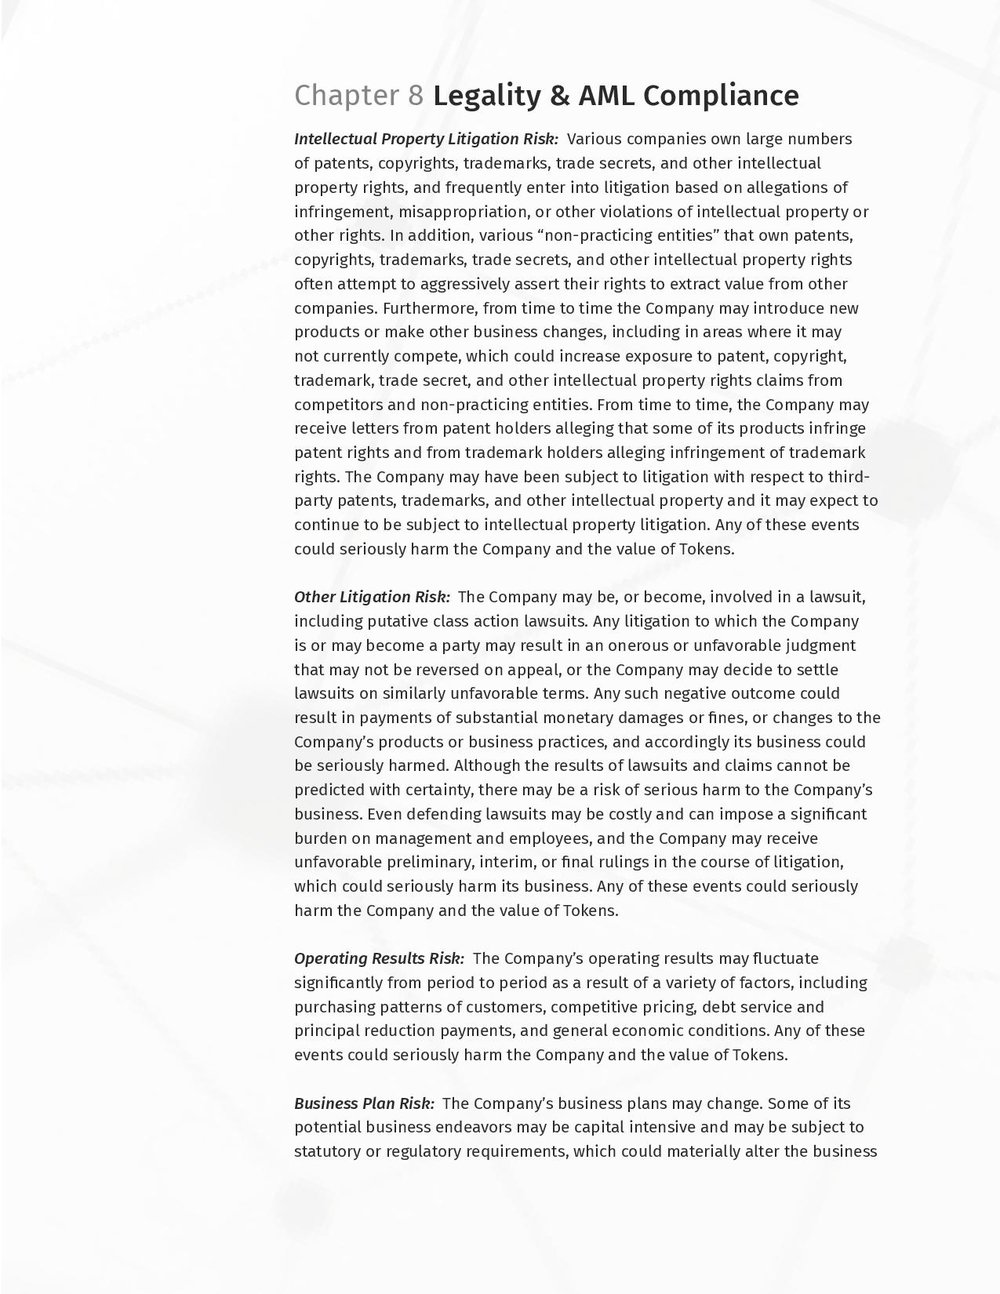 Whitepaper_aug 29 8pm-page-024.jpg